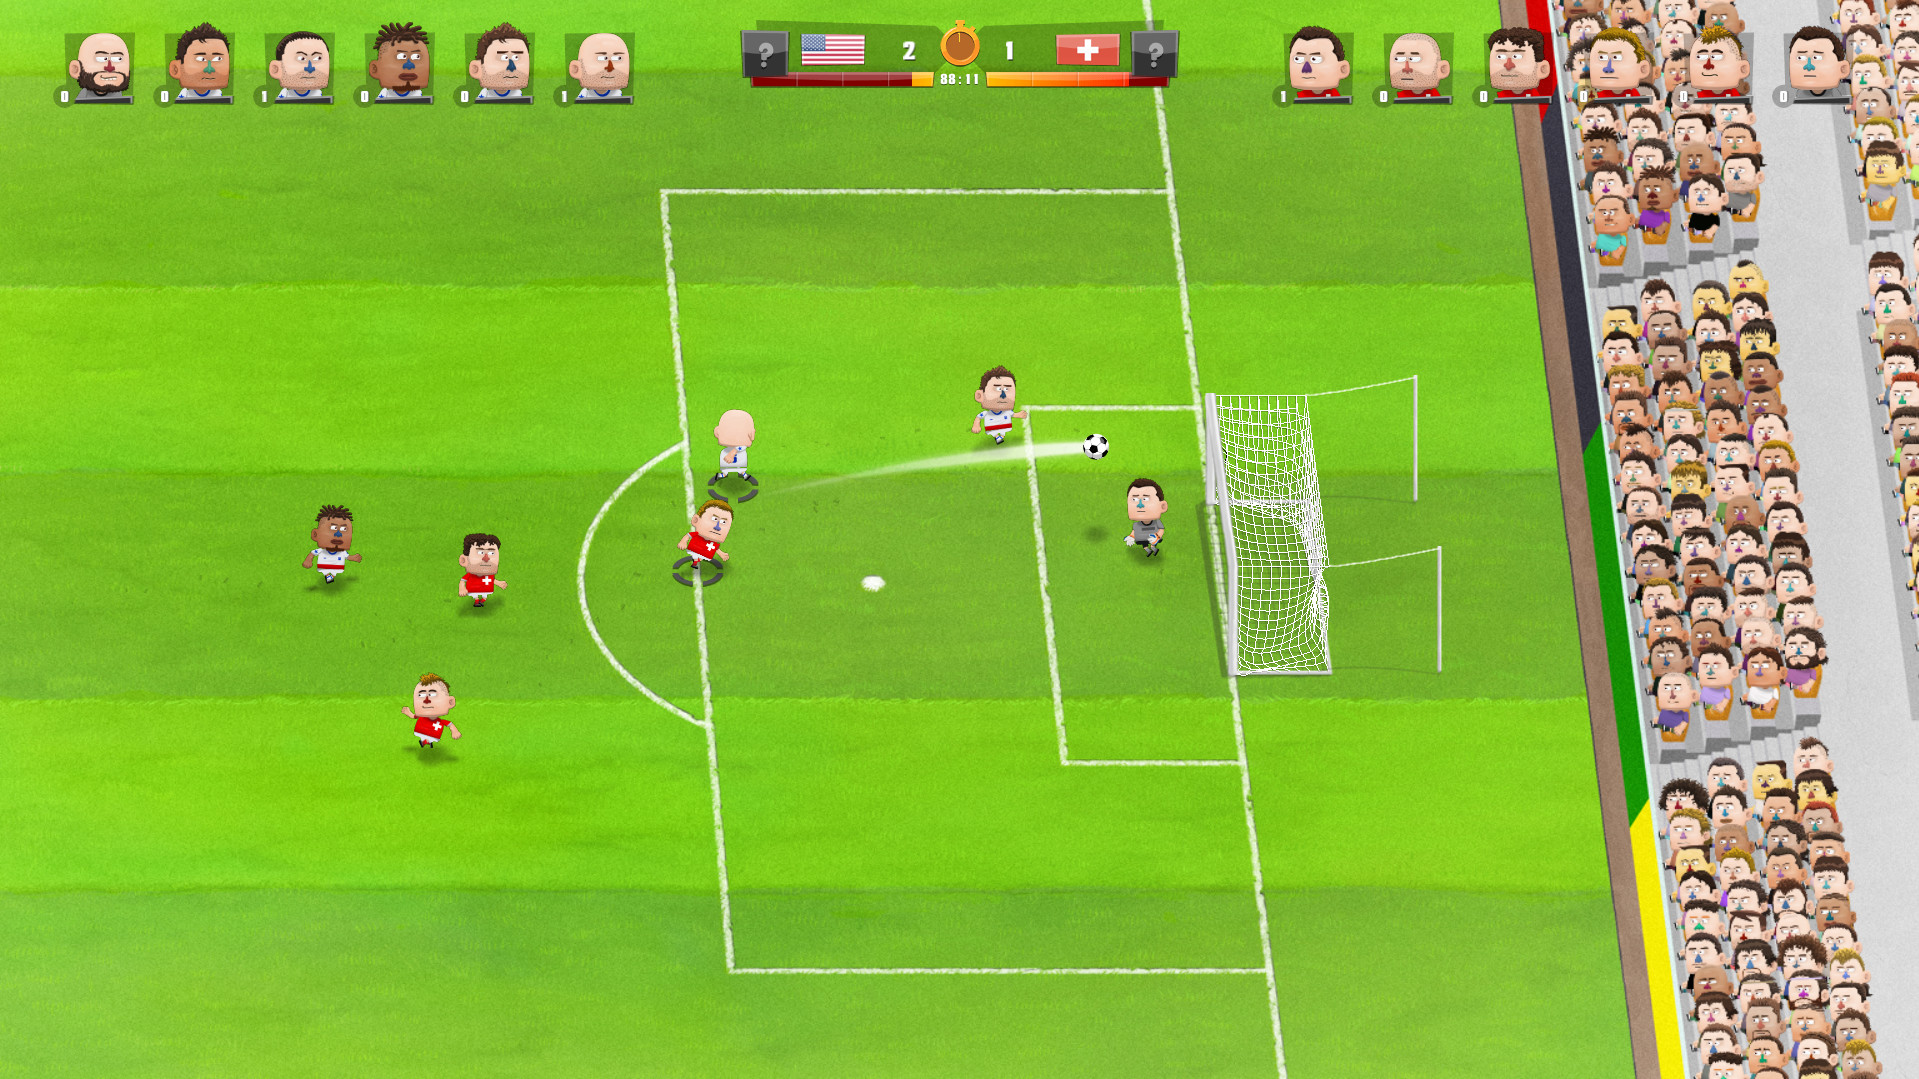 Kopanito All-Stars Soccer Screenshot 3